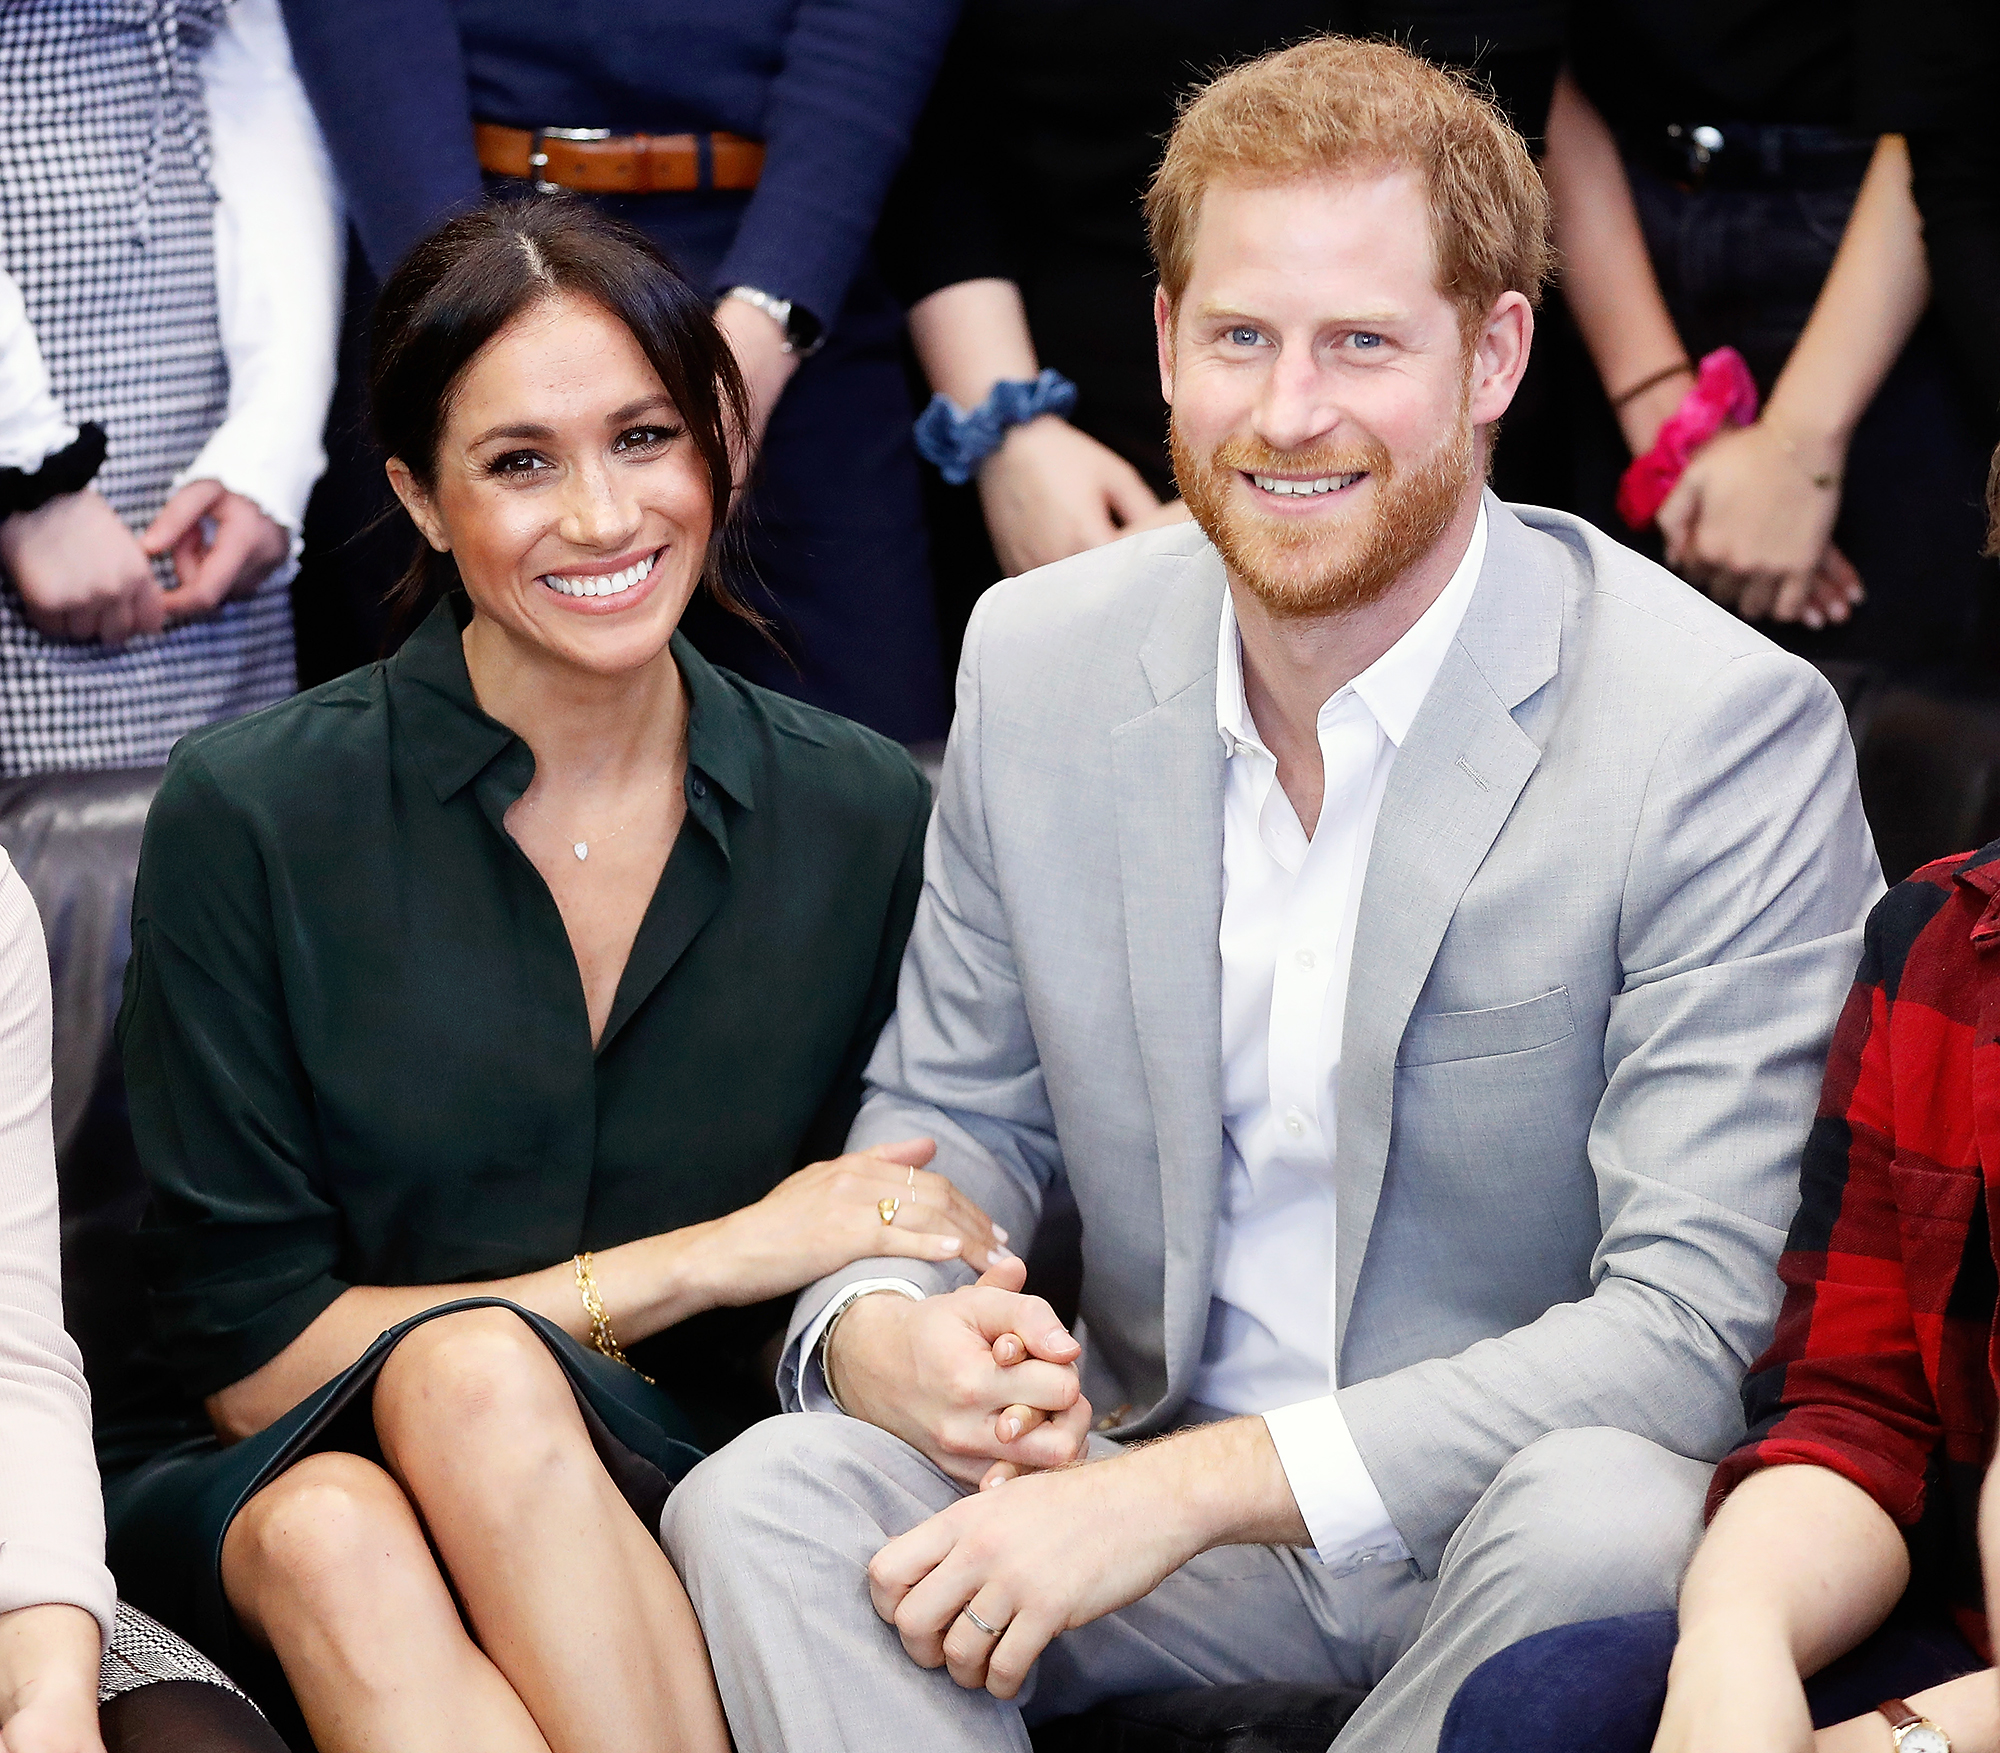 Prince Harry Duchess Meghan Royal Baby 7th In Line Throne - Duchess Meghan and Prince Harry make an official visit to the Joff Youth Centre in Peacehaven, Sussex on October 3, 2018 in Peacehaven, United Kingdom.